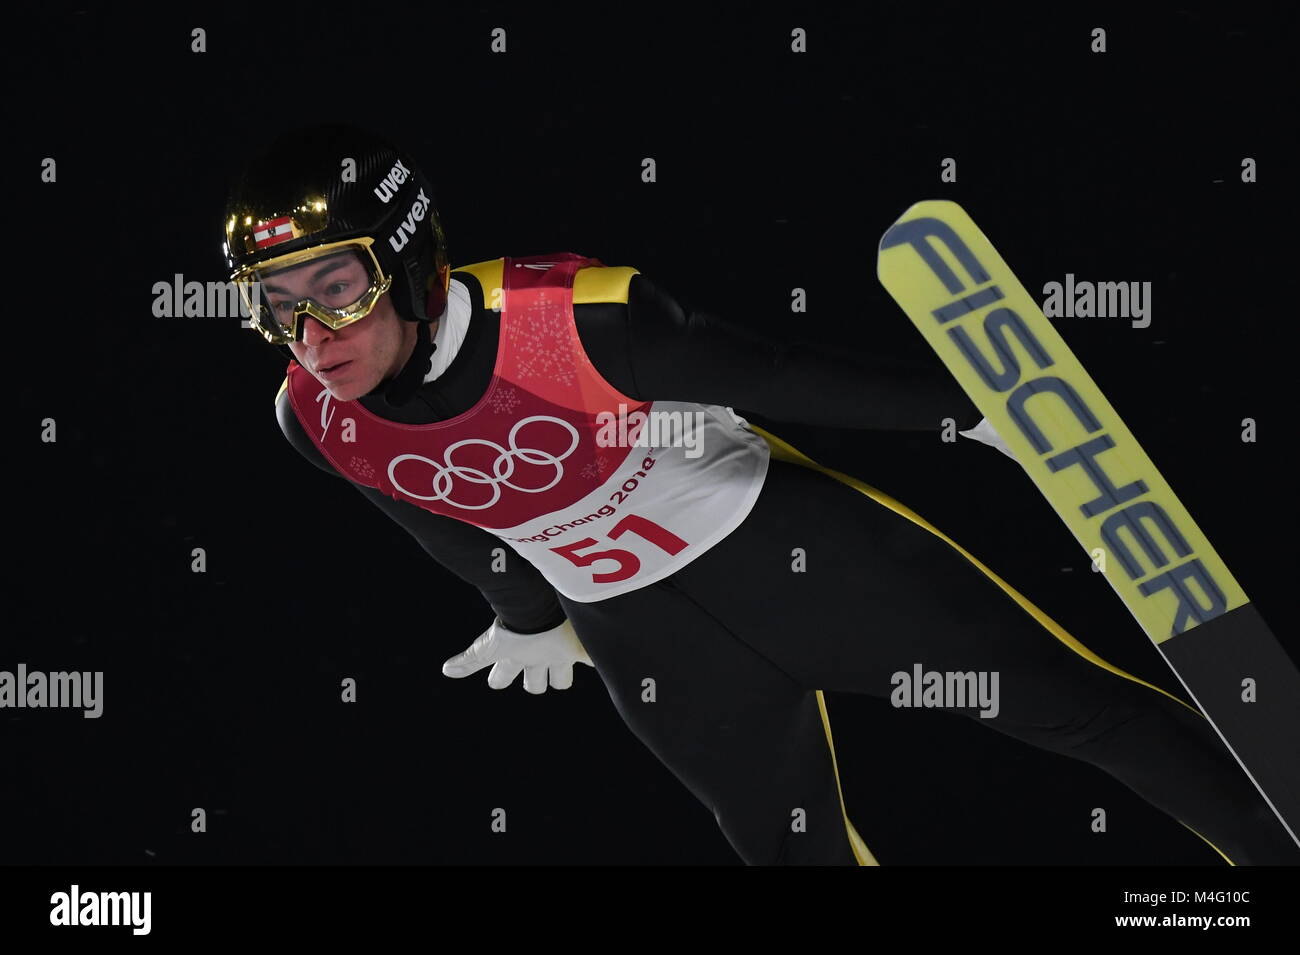 Pyeongchang, South Korea. 16th Feb, 2018. Stefan Kraft from Austria during ski jumping training in the Alpensia - Stock Image